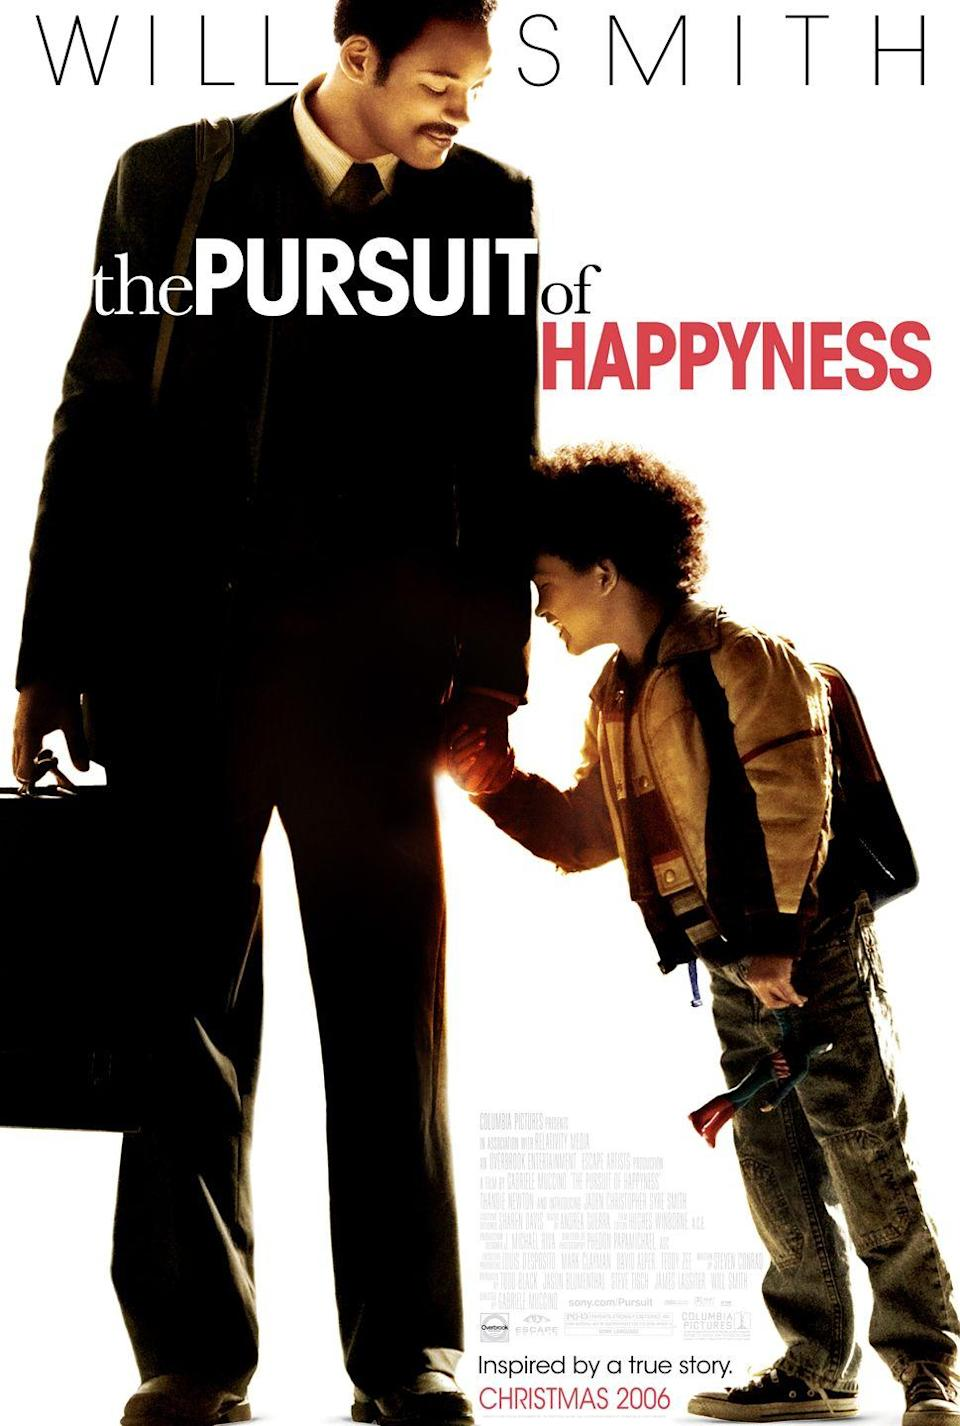 """<p><a class=""""link rapid-noclick-resp"""" href=""""https://www.amazon.com/Pursuit-Happyness-Will-Smith/dp/B000OW77UU/ref=sr_1_2?dchild=1&keywords=the+pursuit+of+happyness&qid=1614179695&sr=8-2&tag=syn-yahoo-20&ascsubtag=%5Bartid%7C10067.g.15907978%5Bsrc%7Cyahoo-us"""" rel=""""nofollow noopener"""" target=""""_blank"""" data-ylk=""""slk:Watch Now"""">Watch Now</a></p><p>Based on the true story of Chris Gardner, a homeless father who raised his son while aspiring to be—and eventually become—a stock broker. <em>The Pursuit of Happyness</em> is a heart wrenching film that details how this one man battled with losing his home, navigating a new career, and keeping his son in good spirits amidst the chaos of life.</p>"""